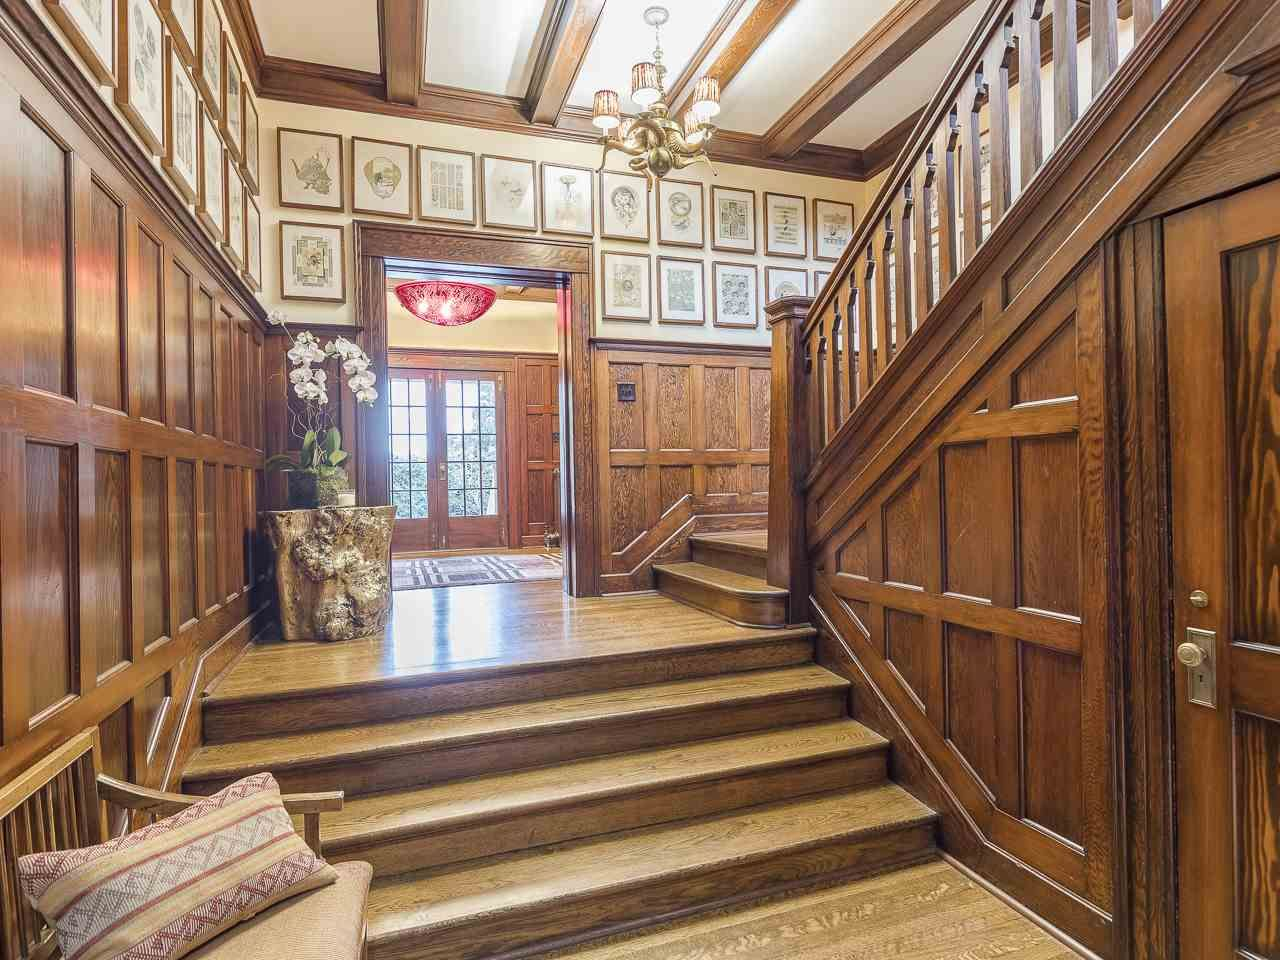 Photo 3: Photos: 3369 THE CRESCENT in Vancouver: Shaughnessy House for sale (Vancouver West)  : MLS®# R2534743